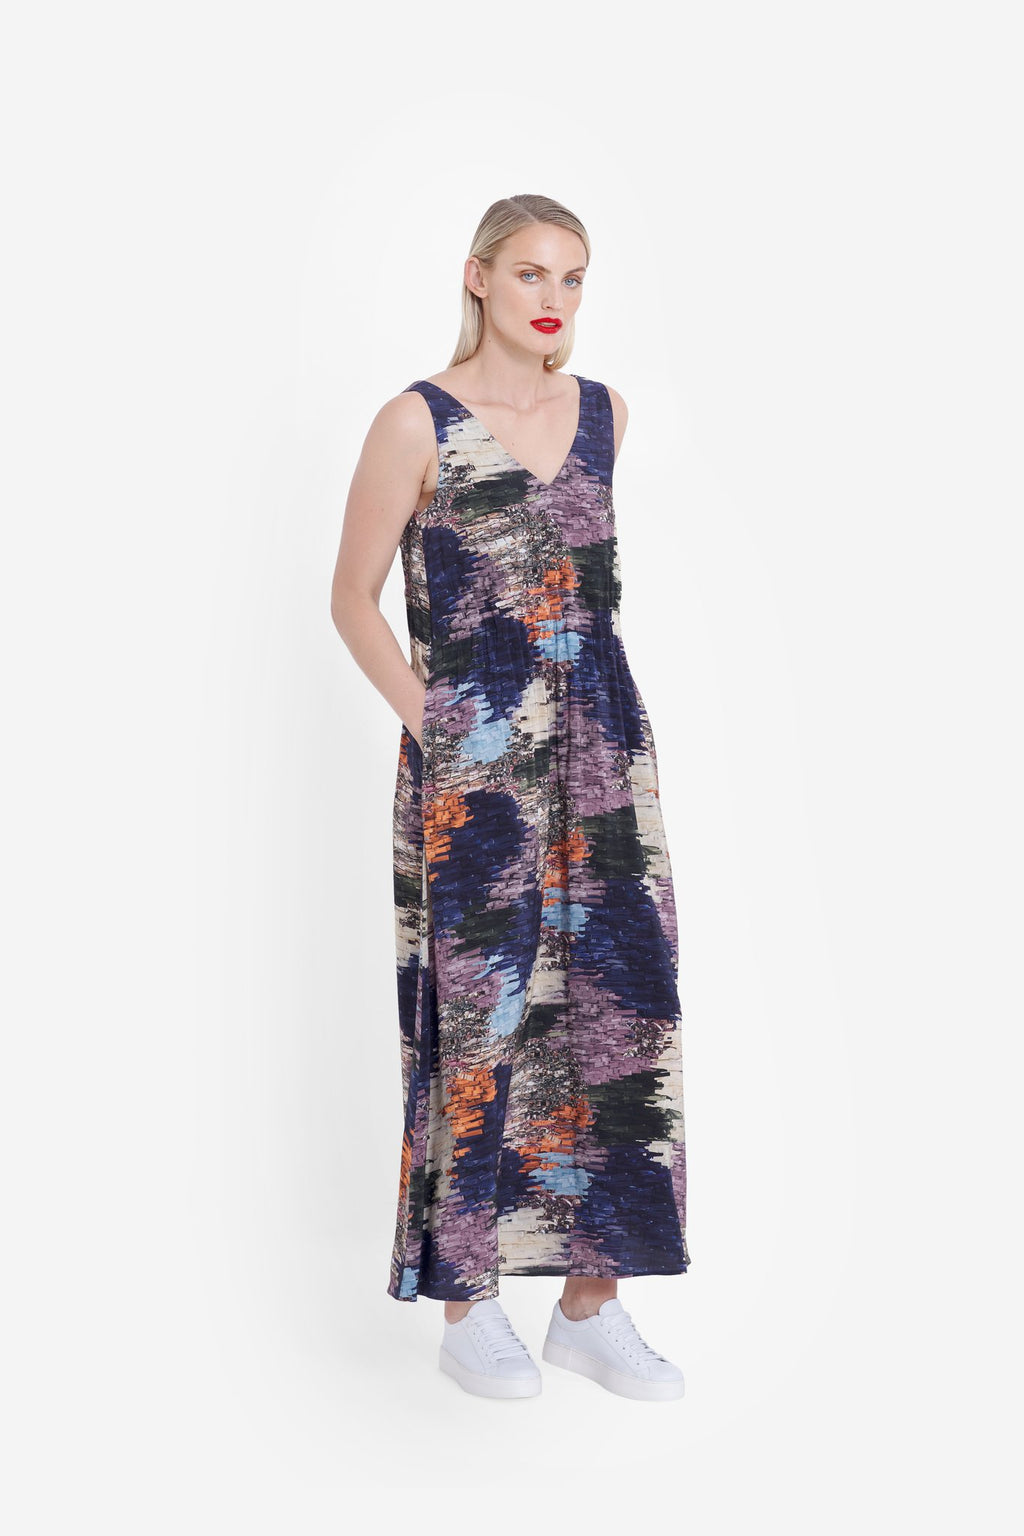 ELK The Label - Arden Long Dress online at PAYA boutique